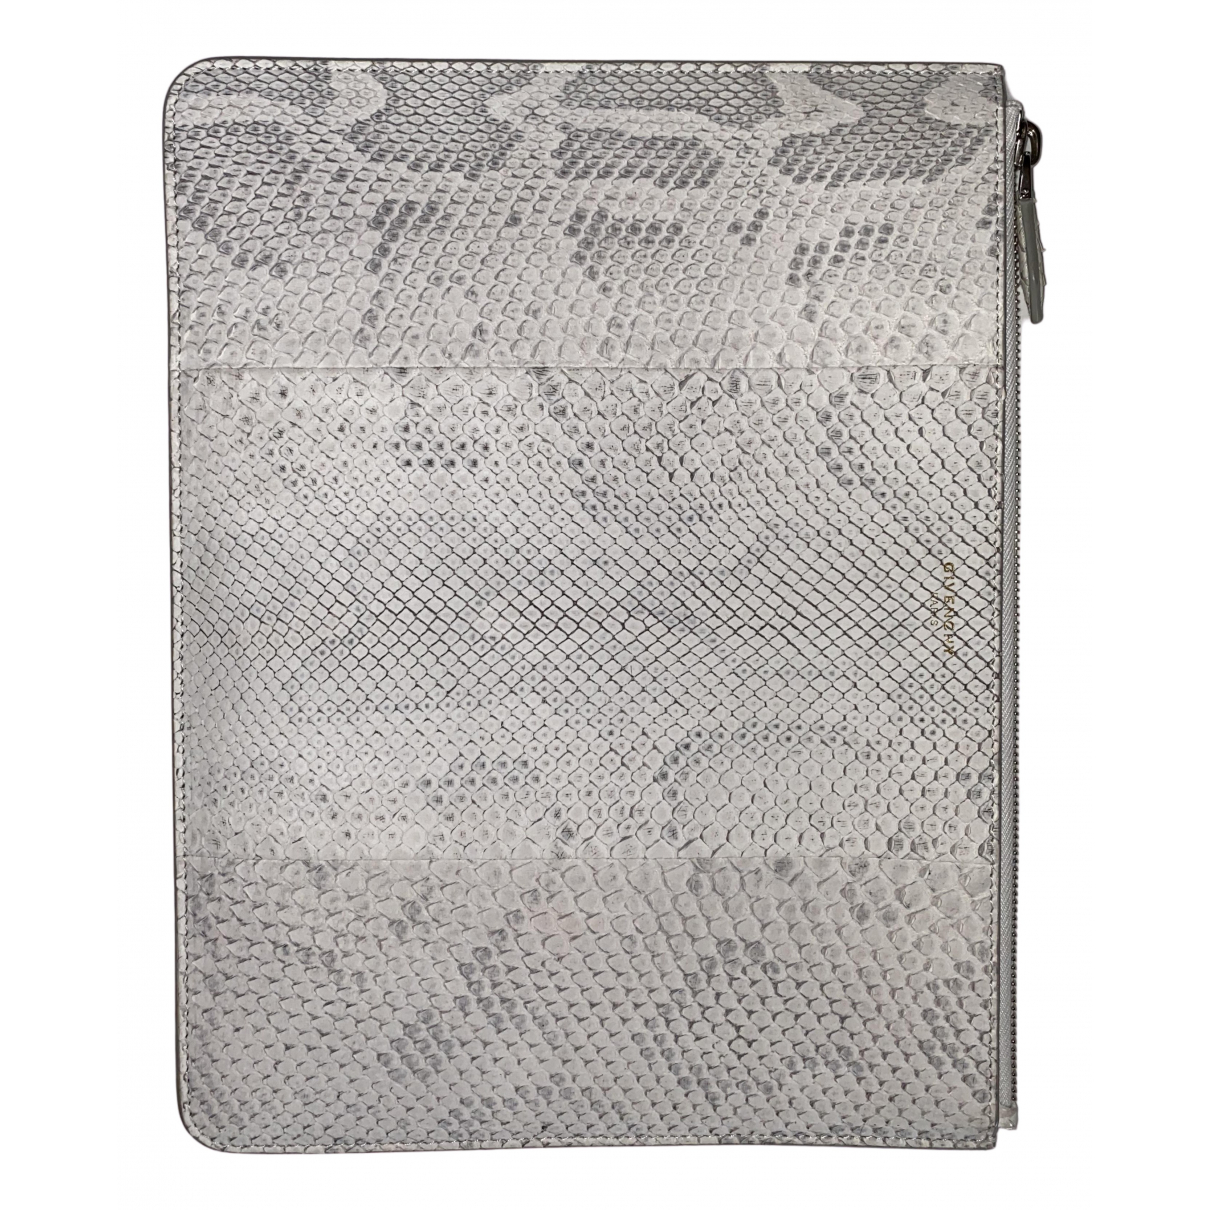 Givenchy \N Clutch in  Weiss Python